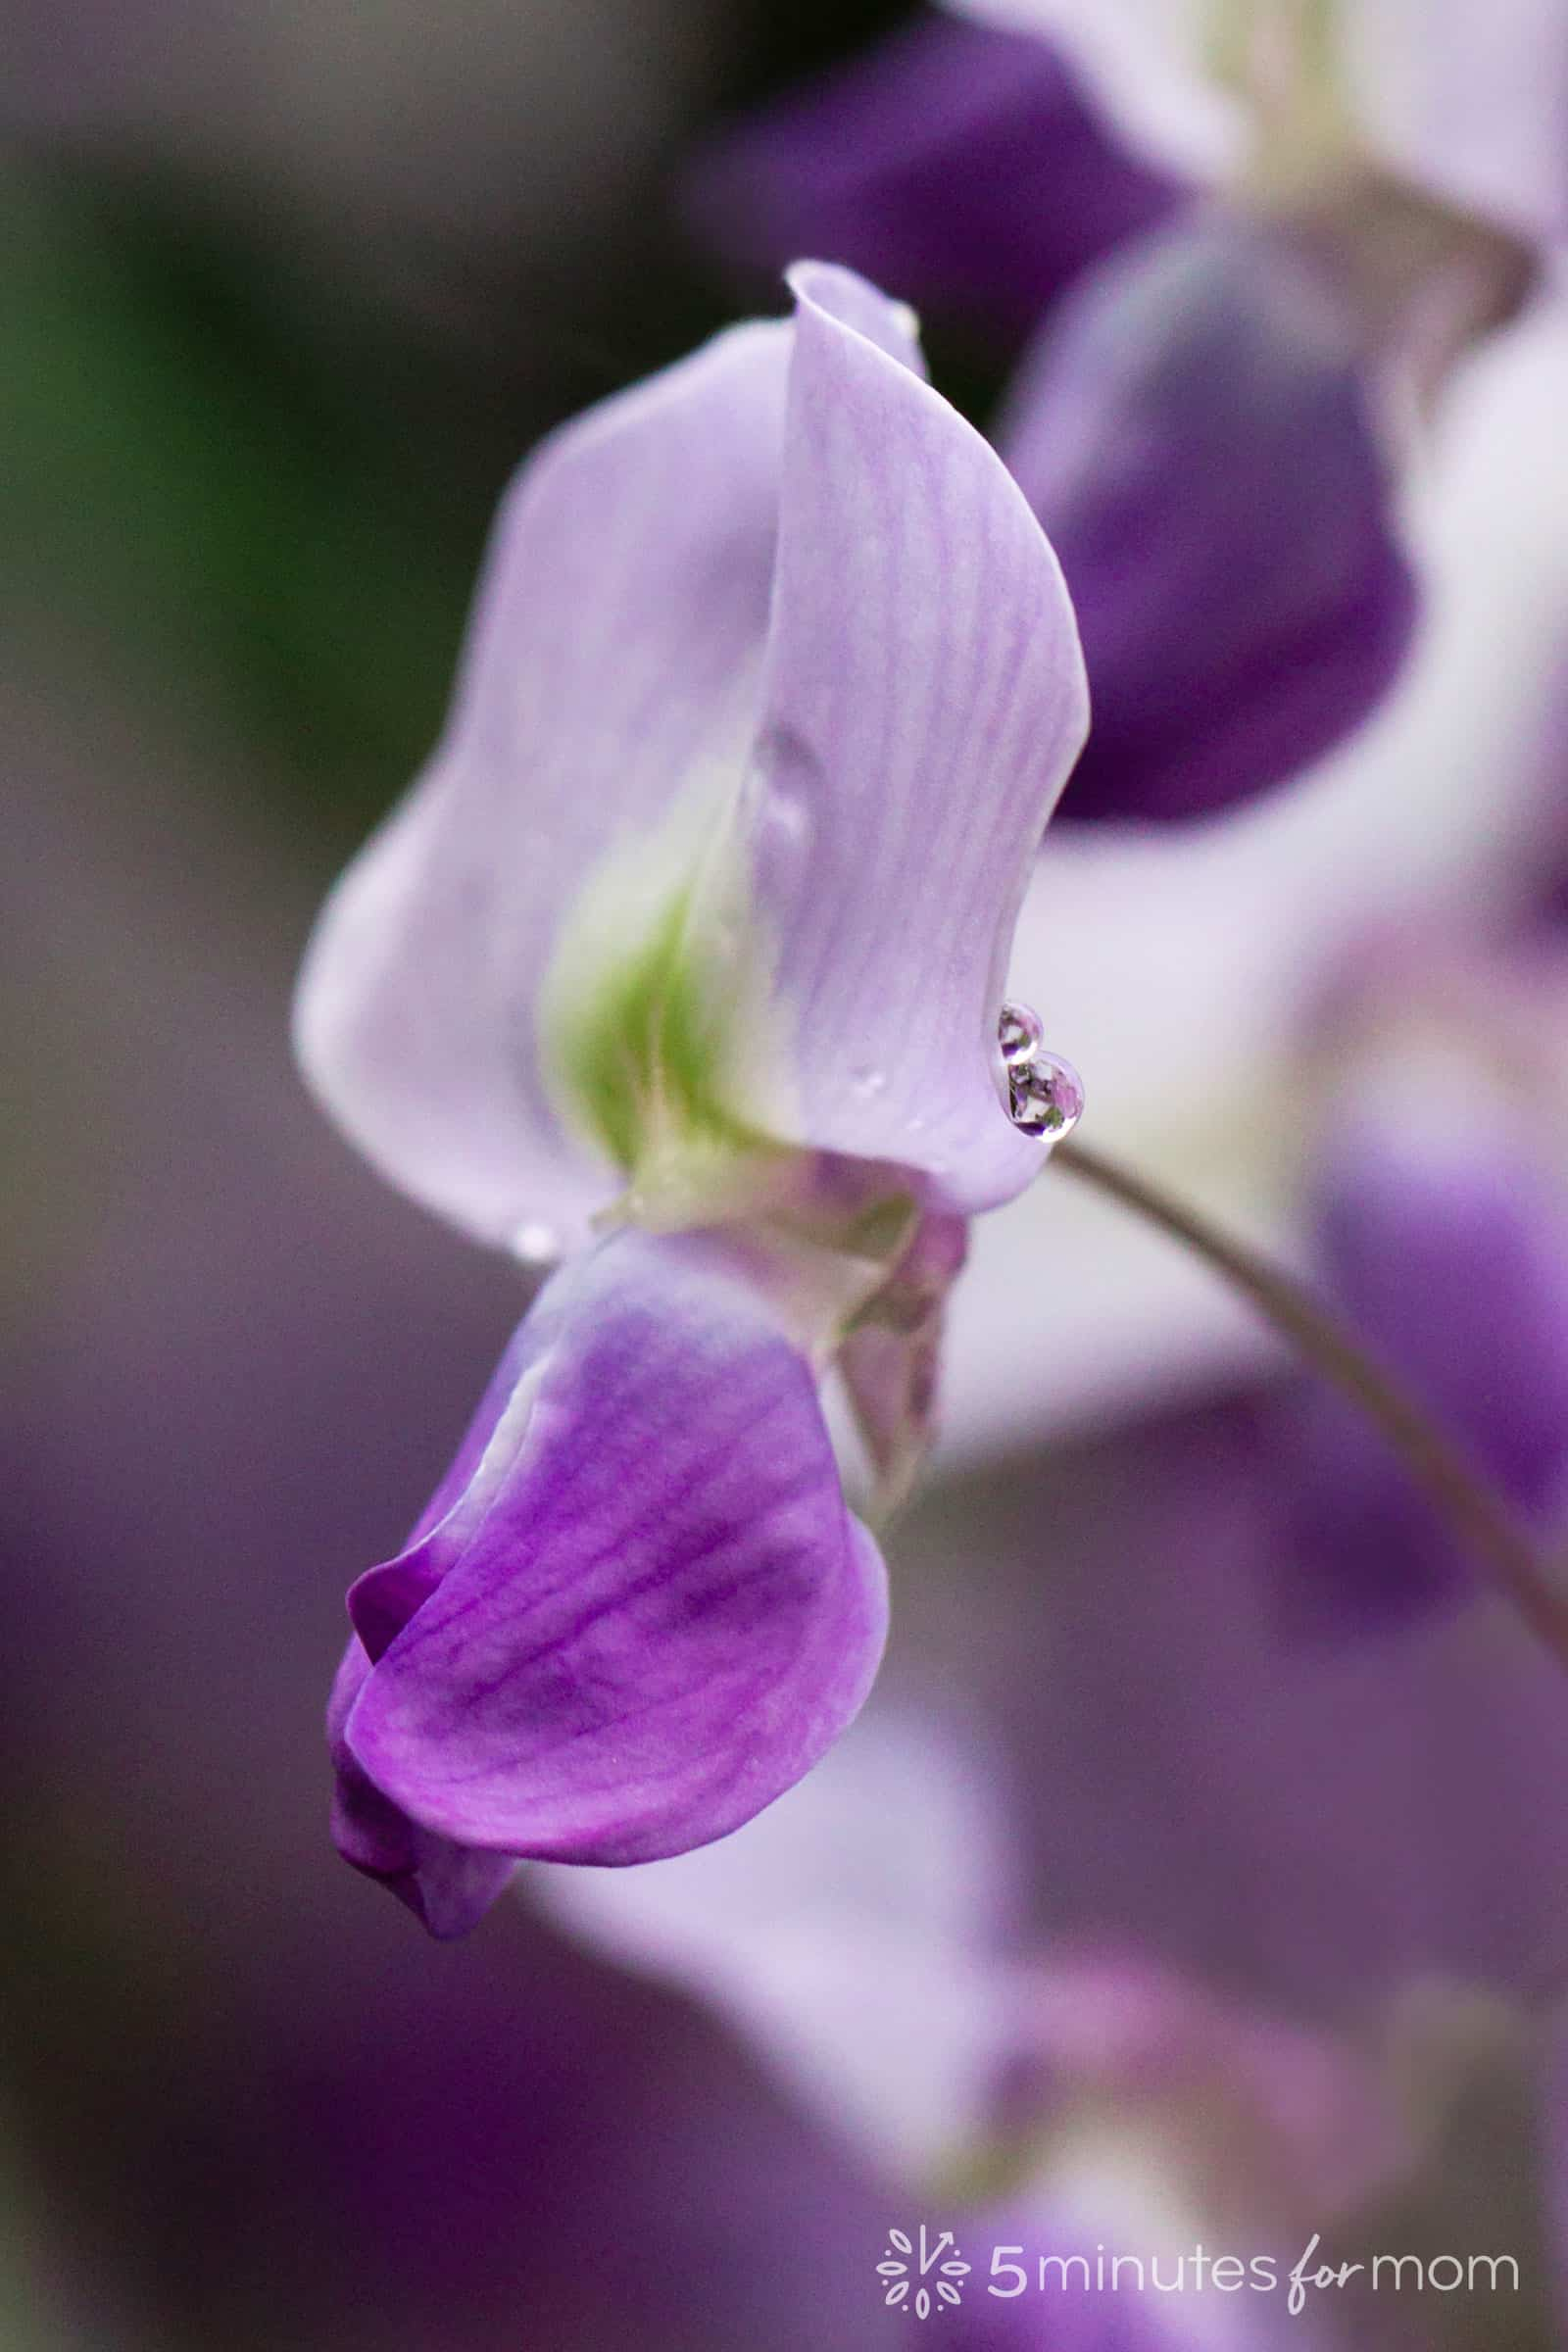 wisteria blossom in how to photograph flowers tutorial